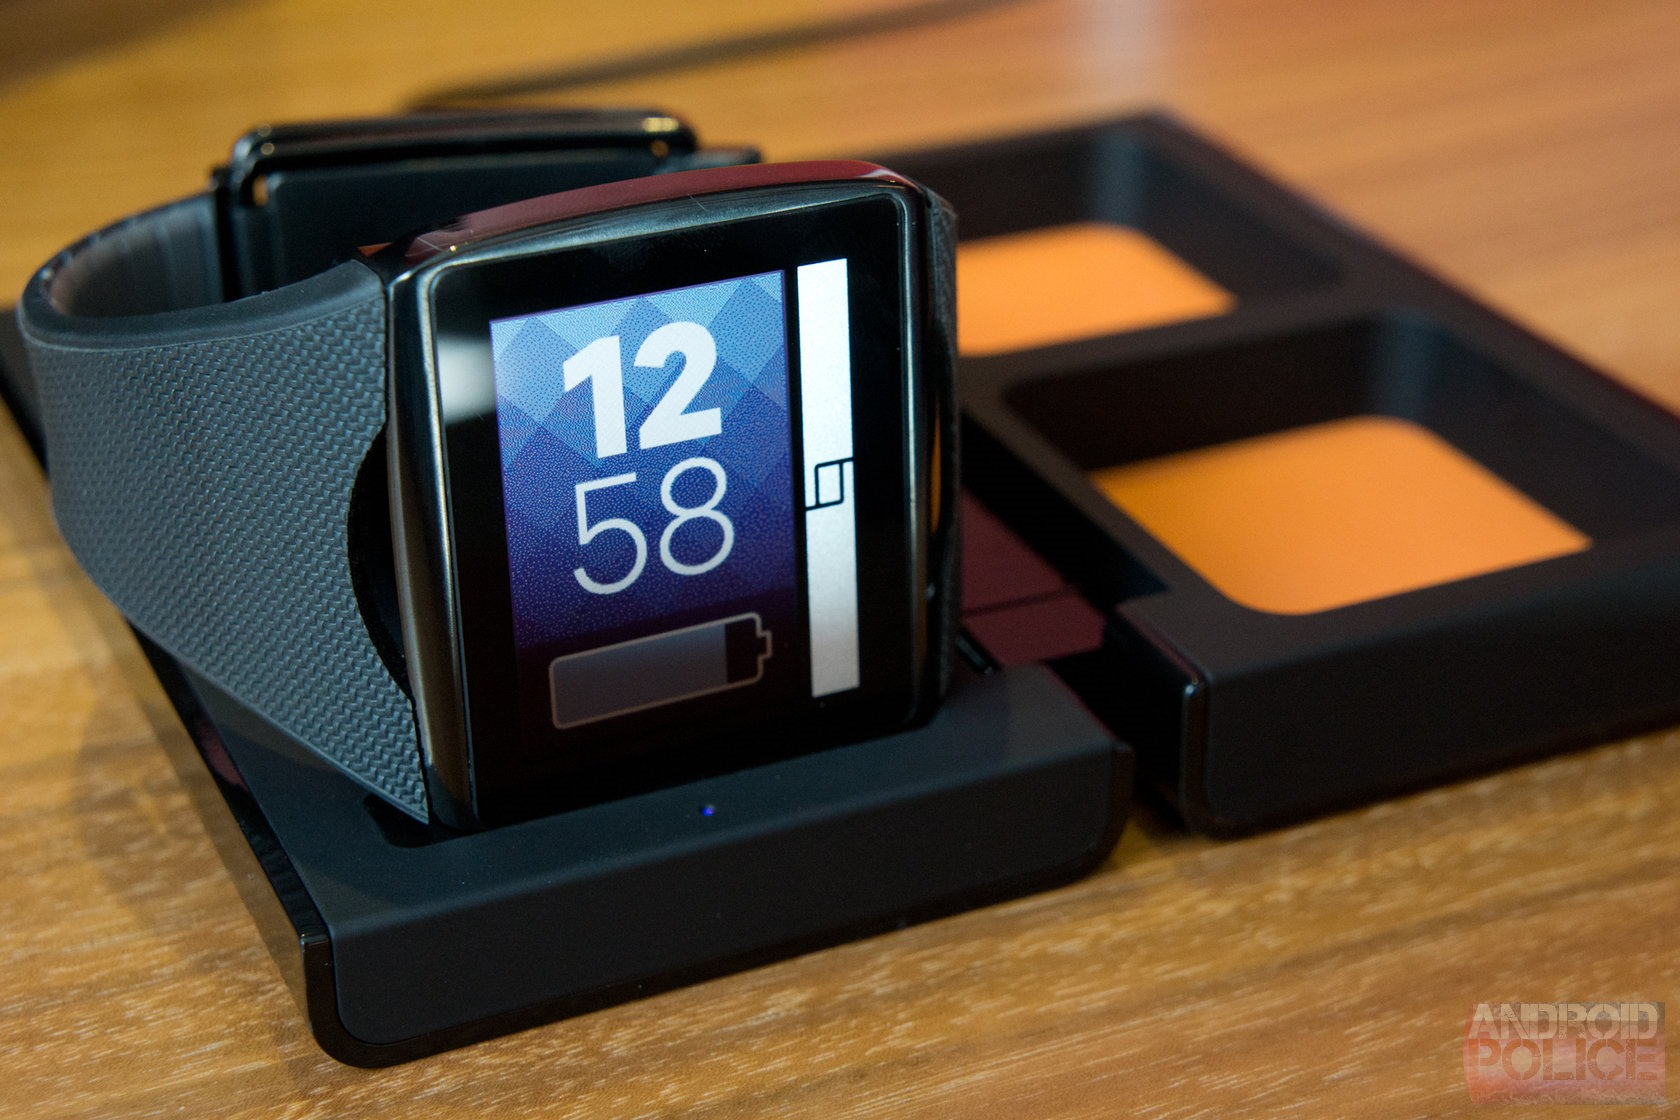 [IFA 2013] Hands-On With The Qualcomm Toq Smartwatch (Video)